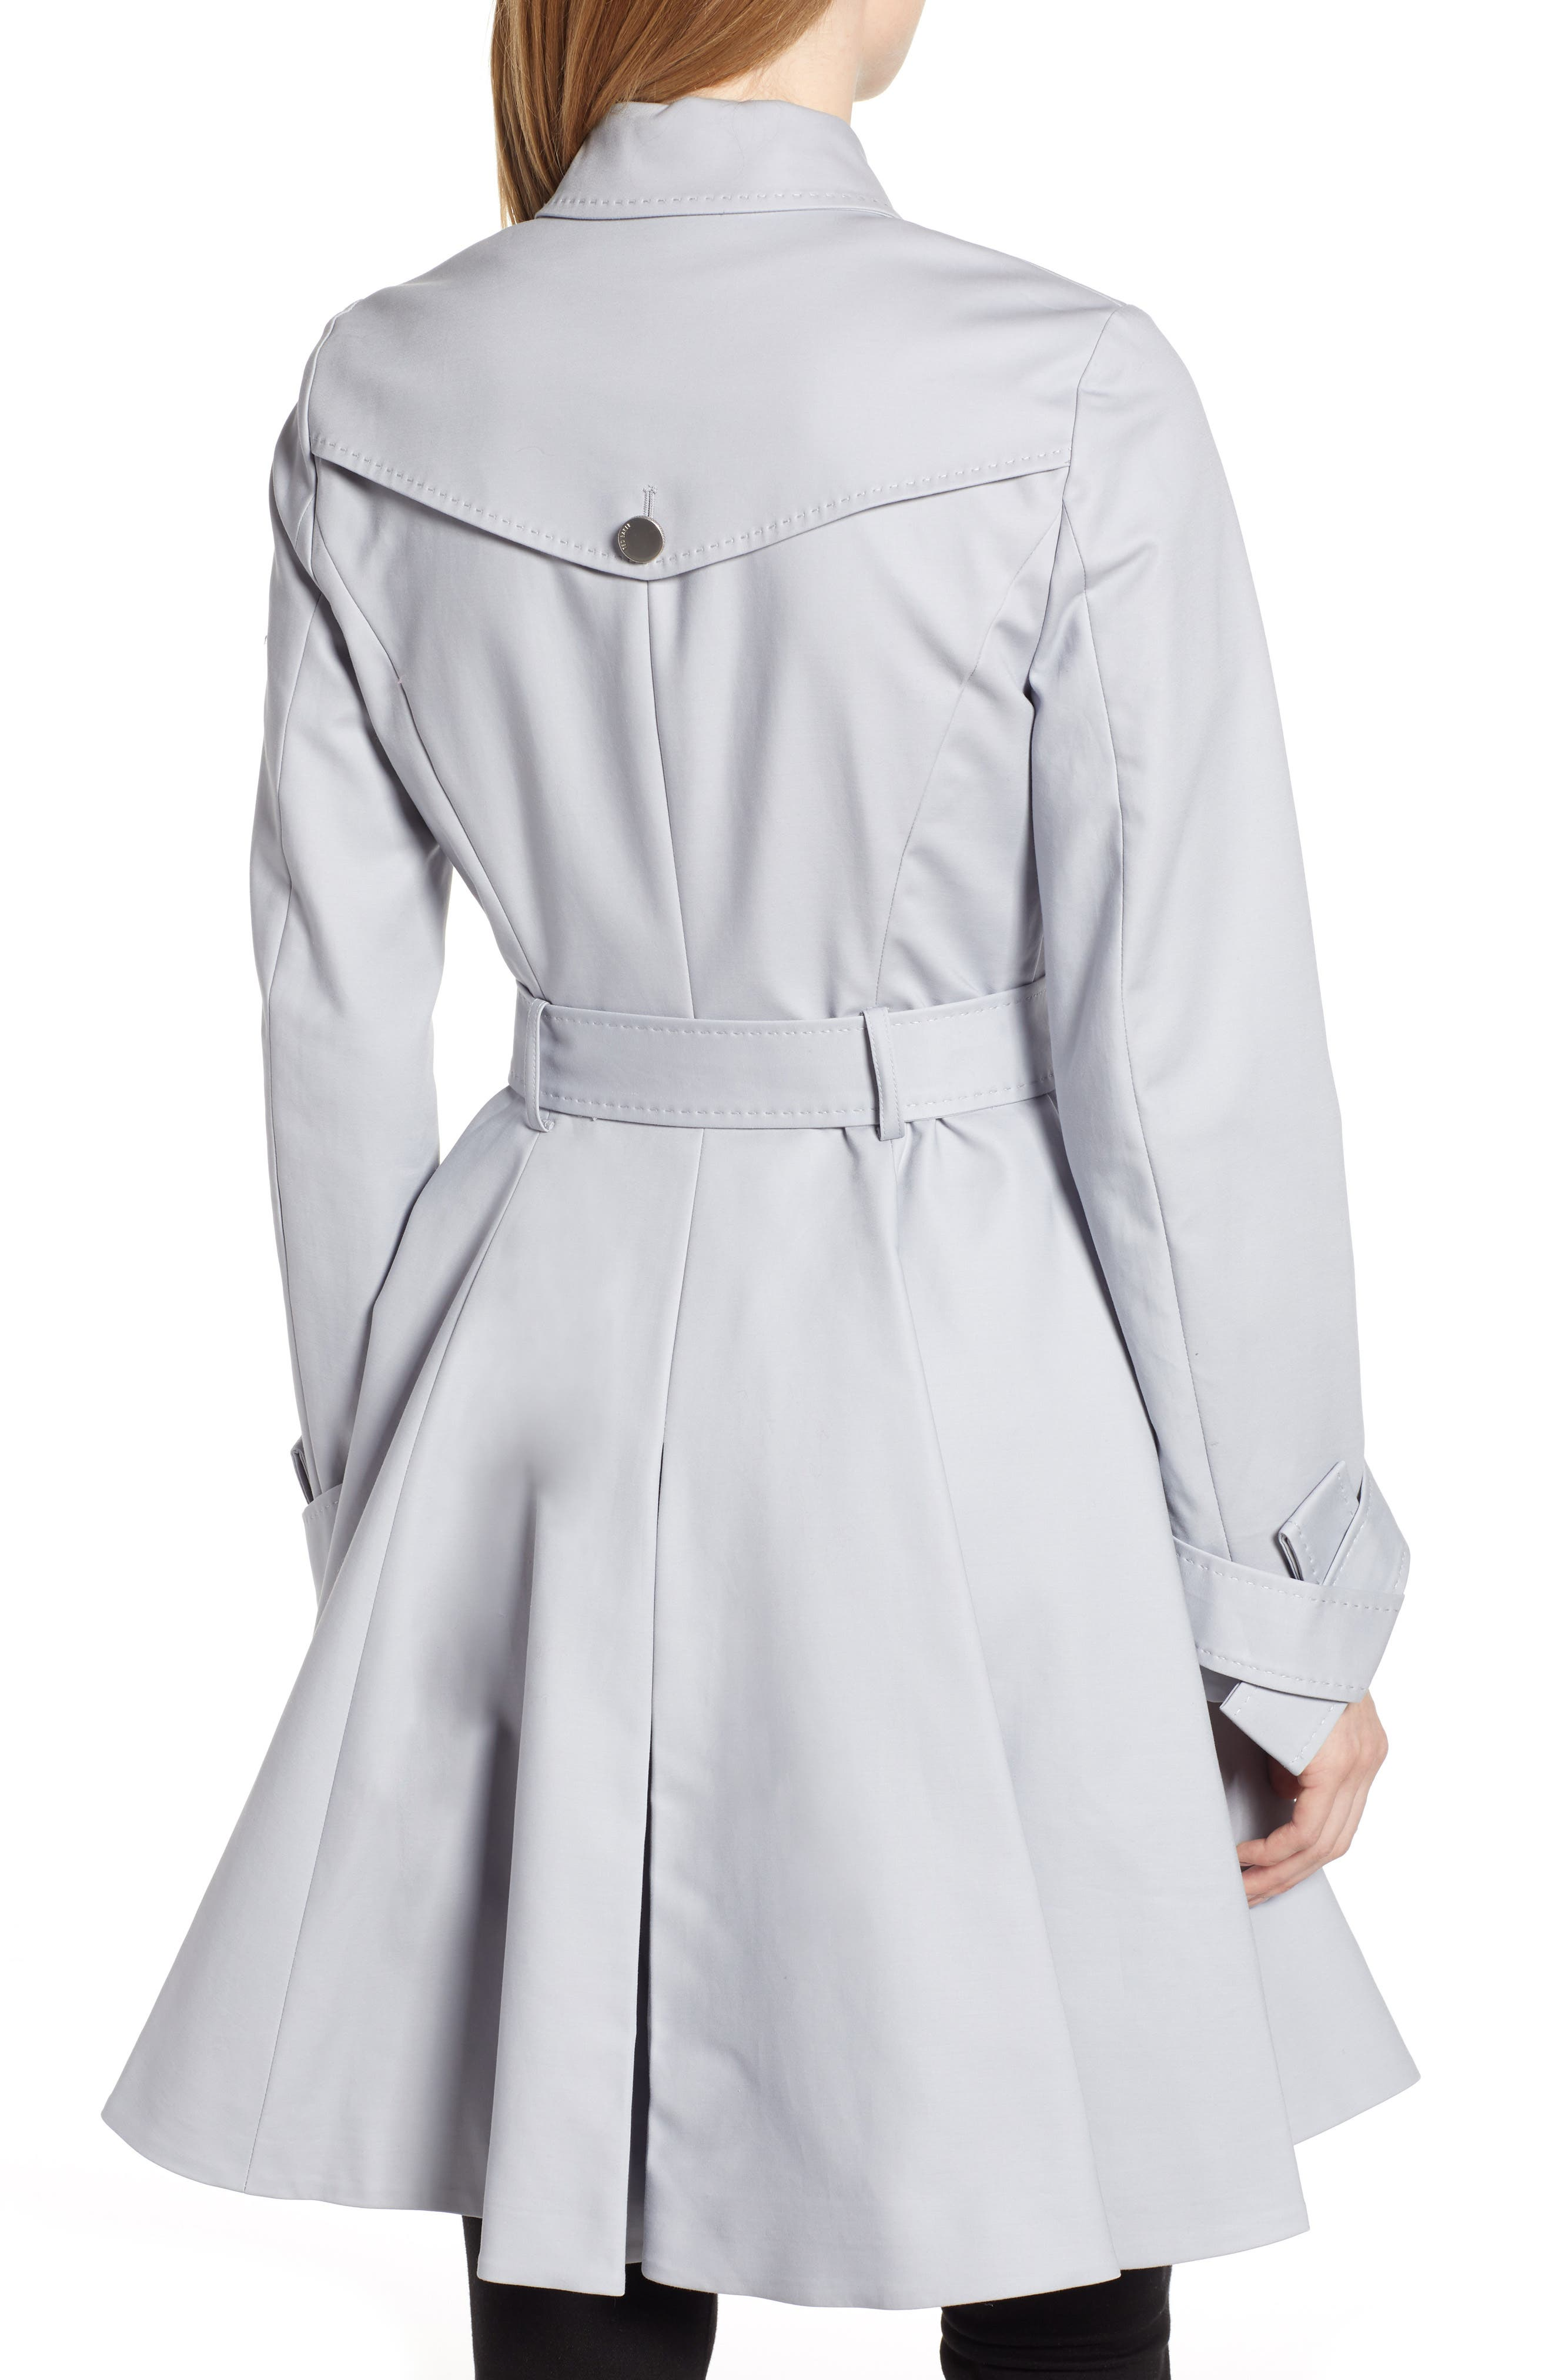 TED BAKER LONDON, Tie Cuff Detail Trench Coat, Alternate thumbnail 2, color, GREY